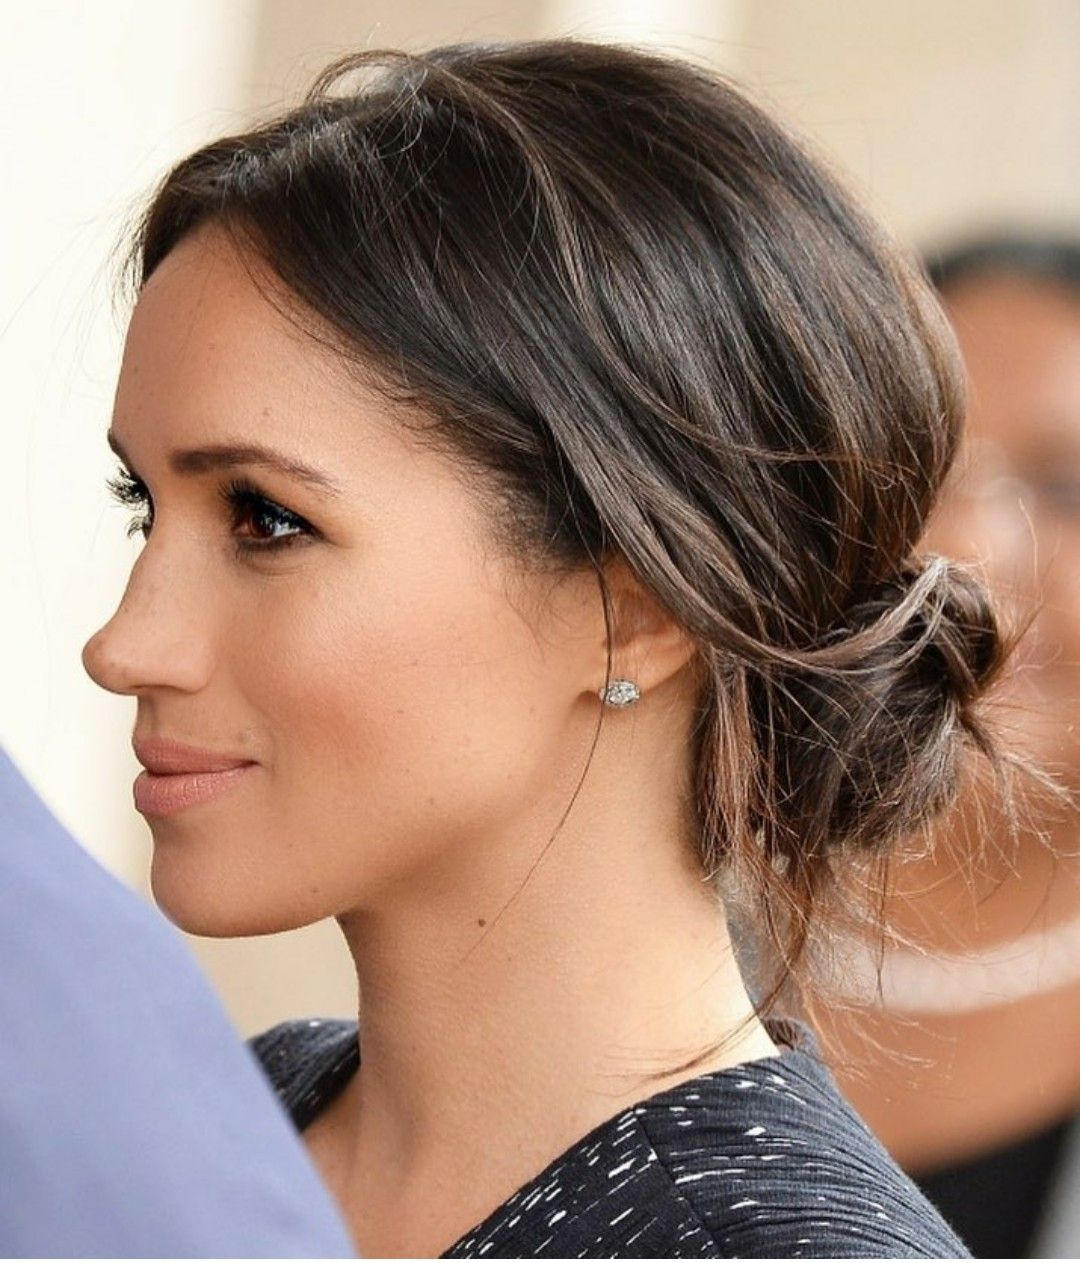 Ms Meghan Markle Is Now Hrh The Duchess Of Sussex Truly An American Princess Meghan Markle Hair Hair Beauty Bridesmaid Hair